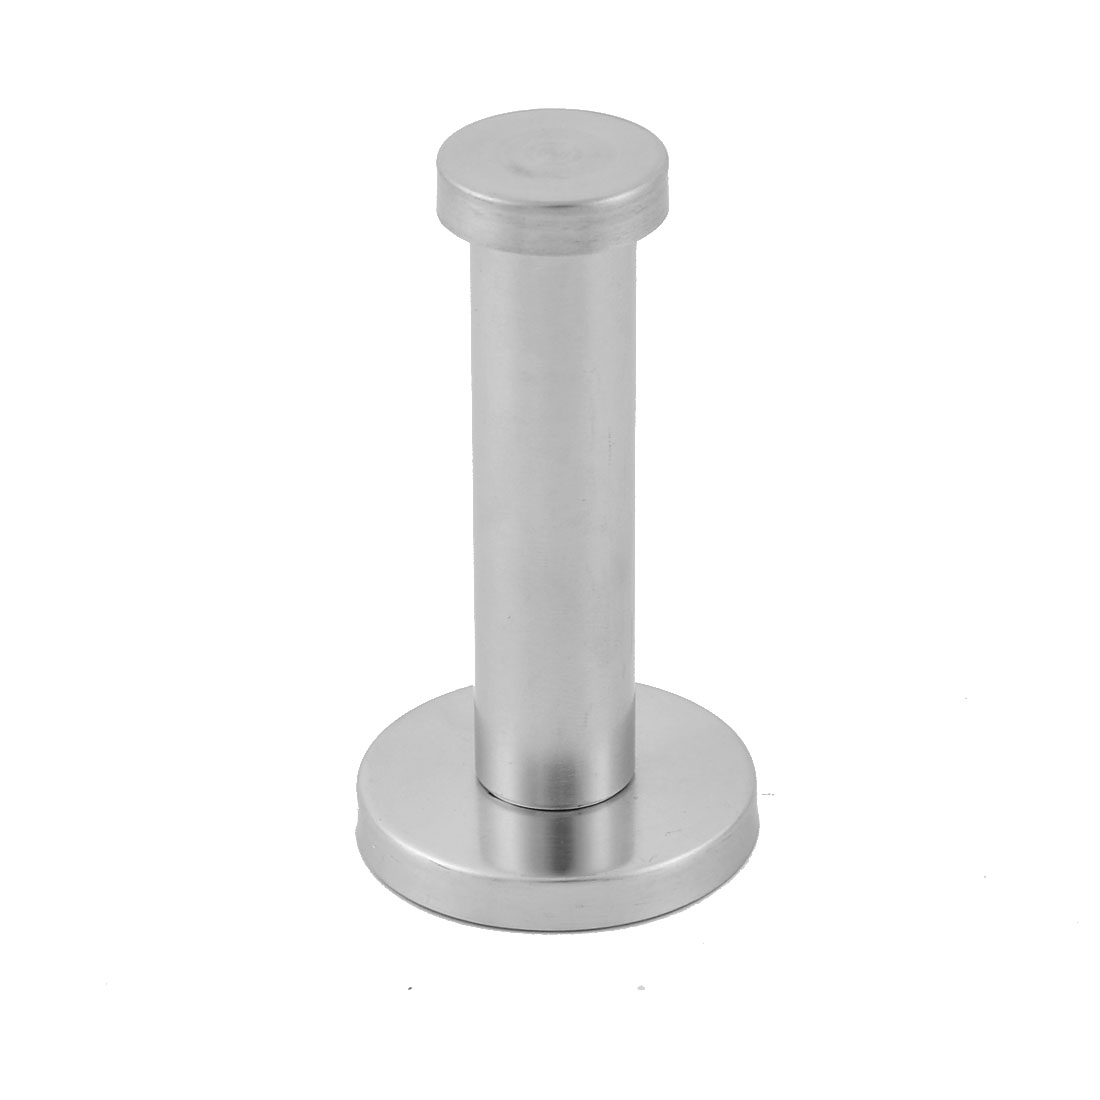 Stainless Steel Round Wall Mount Clothes Hat Robe Towel Coat Holder Hanger Hook